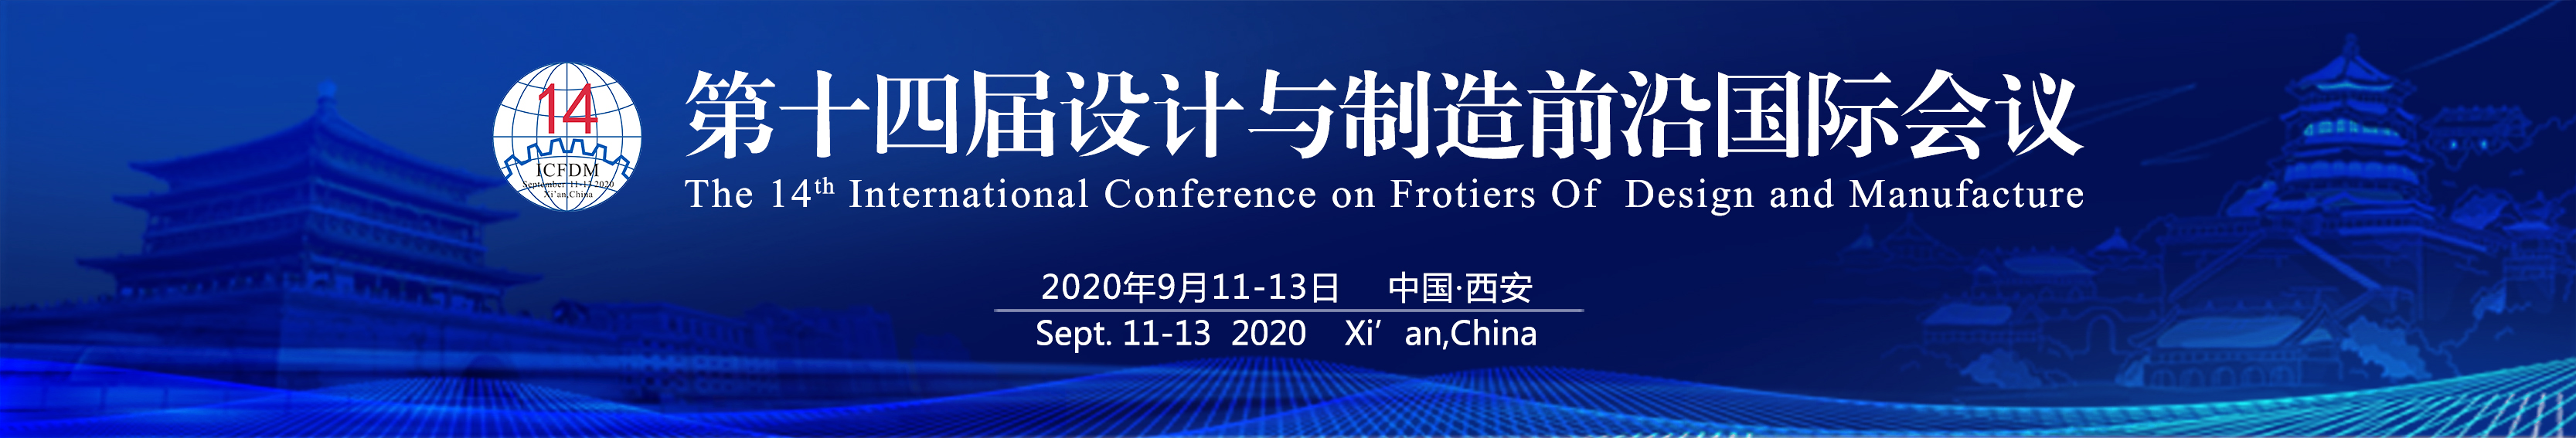 The 14th International Conference on Frontiers of Design and Manfacturing